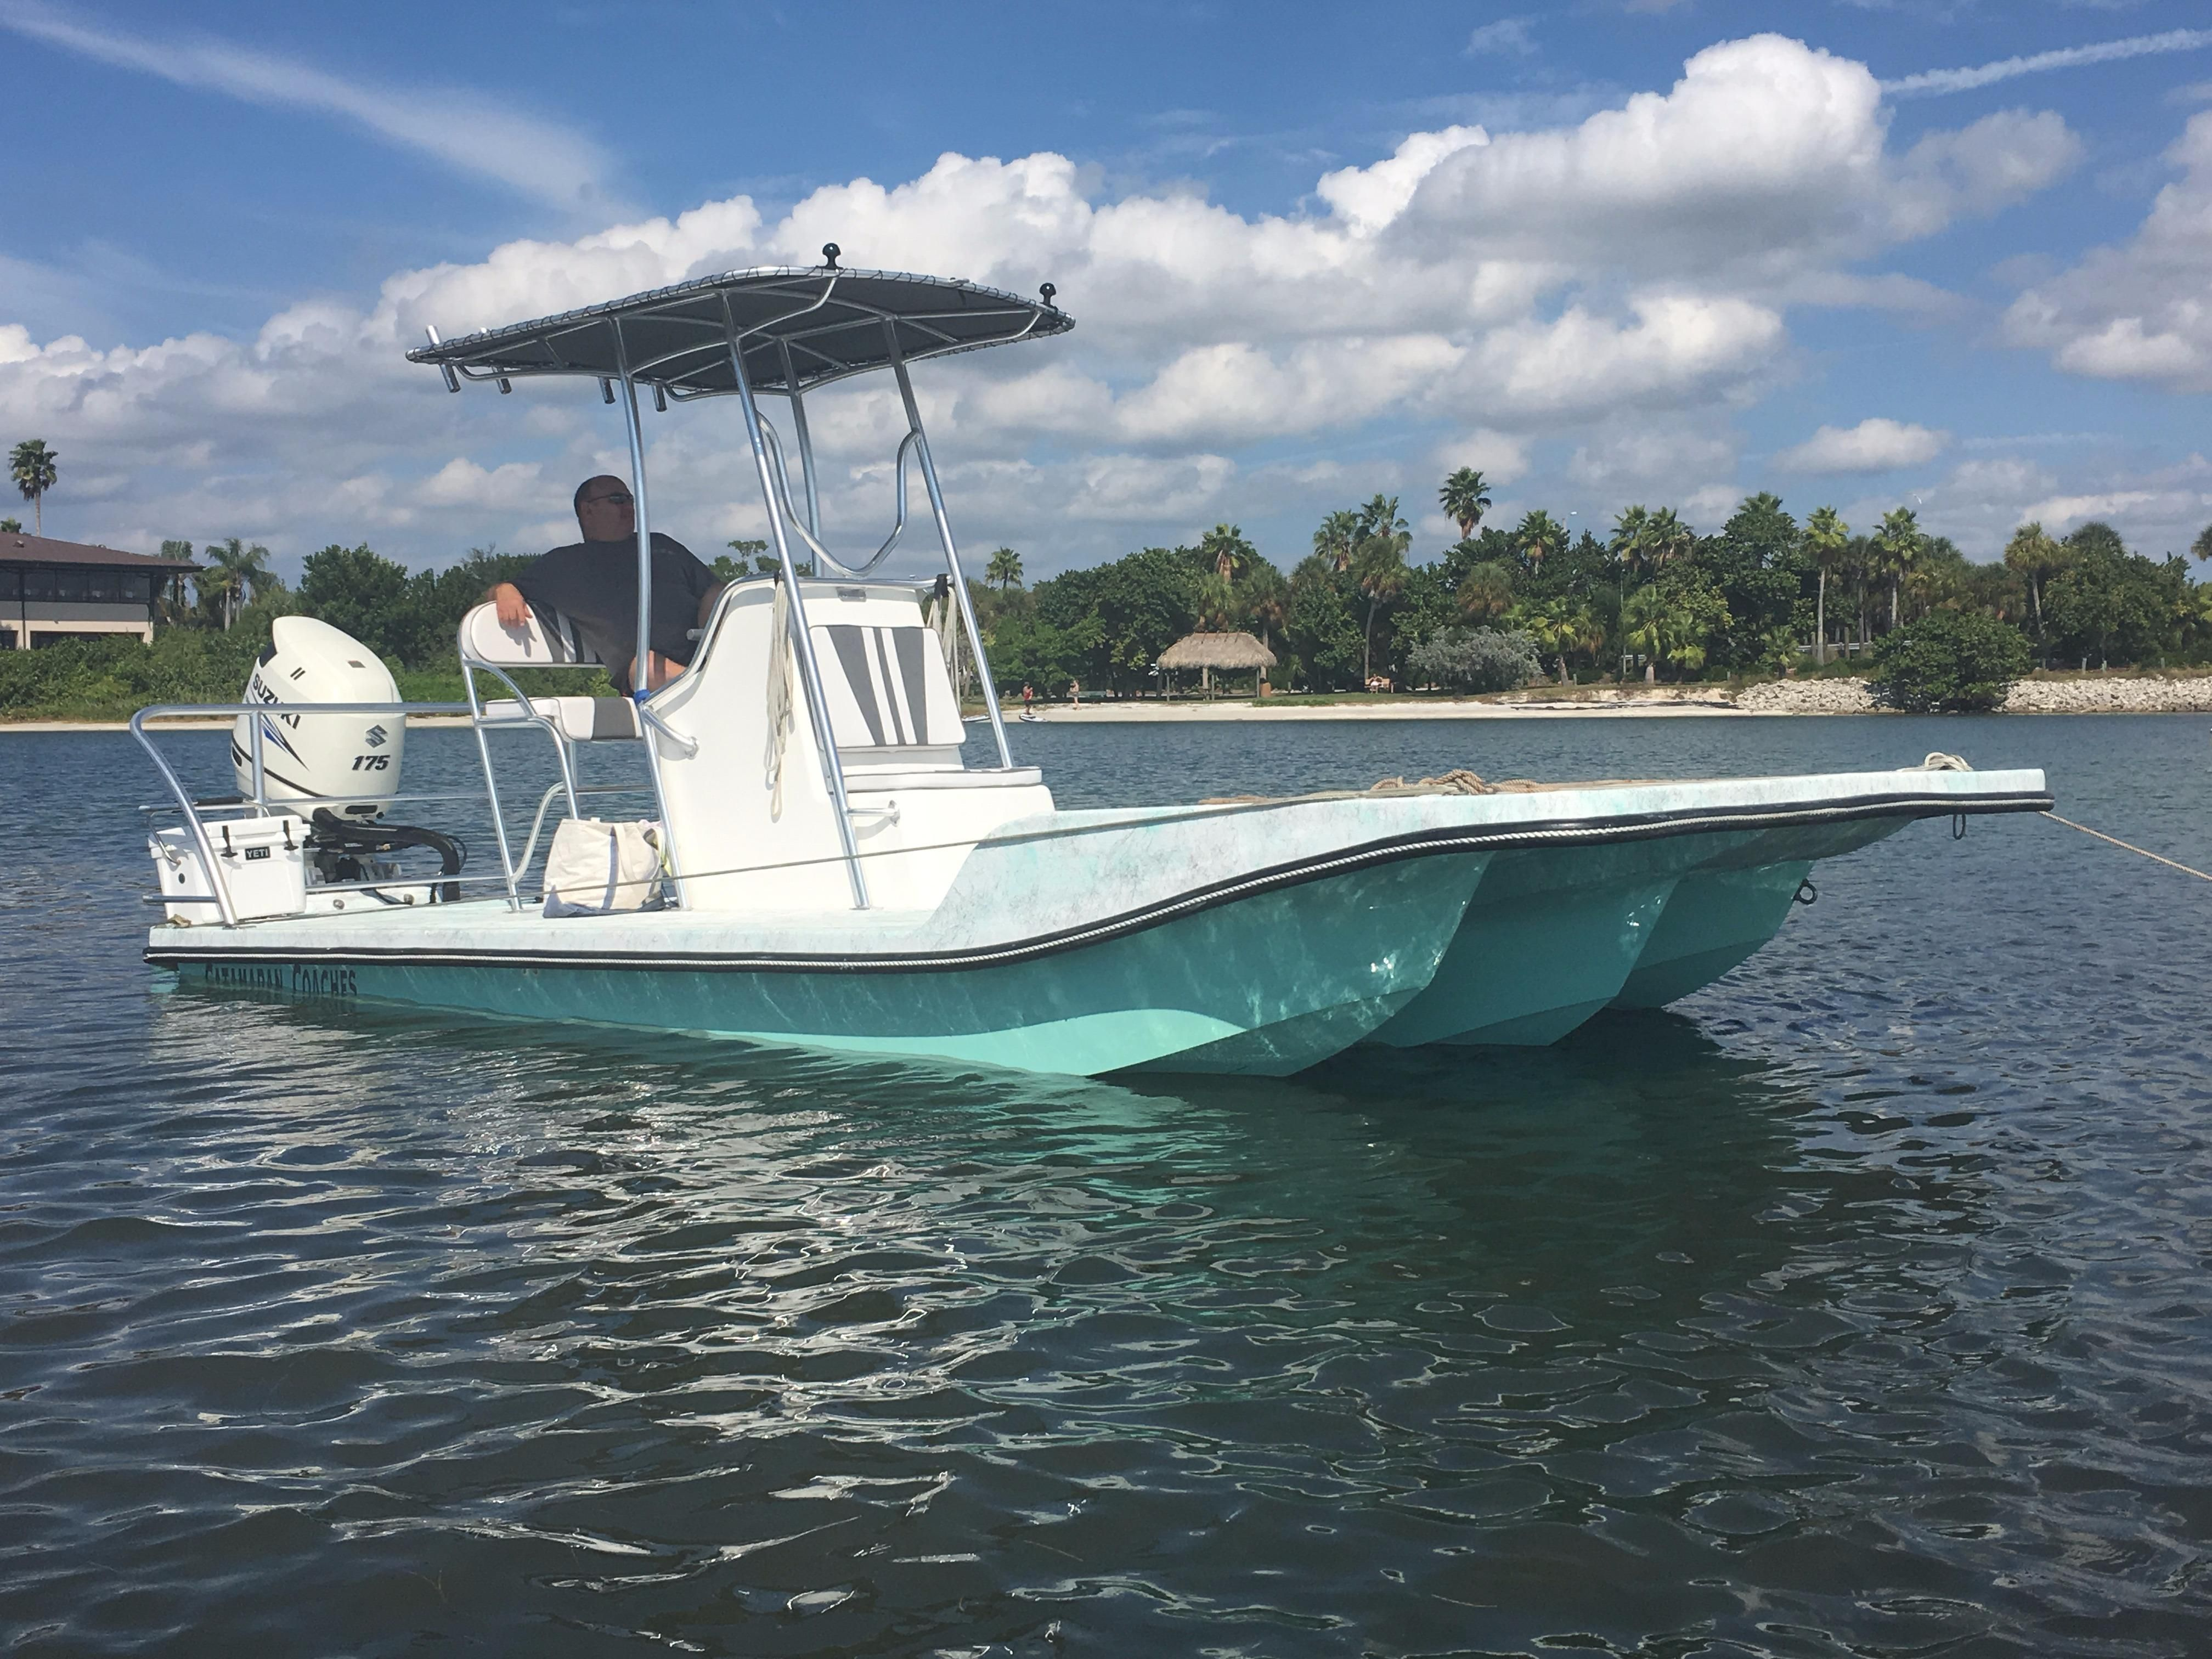 Tidewater Boats For Sale >> 2017 CATAMARAN COACHES Flats Boat 20 Power Boat For Sale - www.yachtworld.com